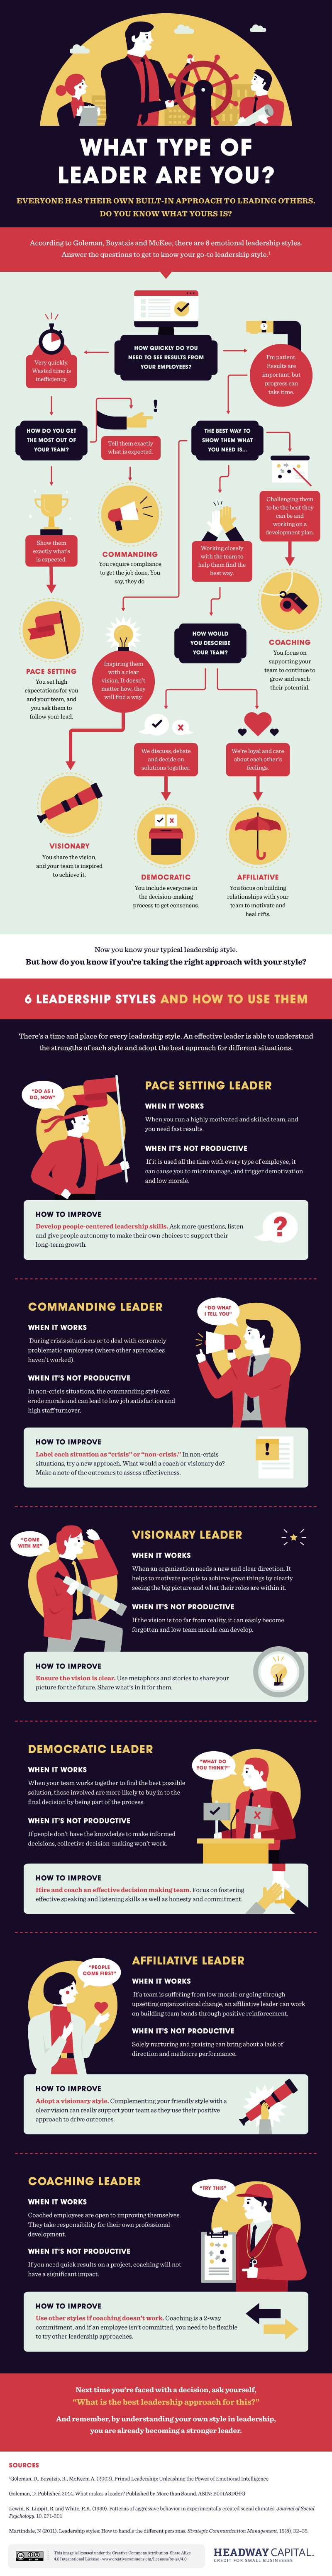 What Type of Leader Are You Infographic